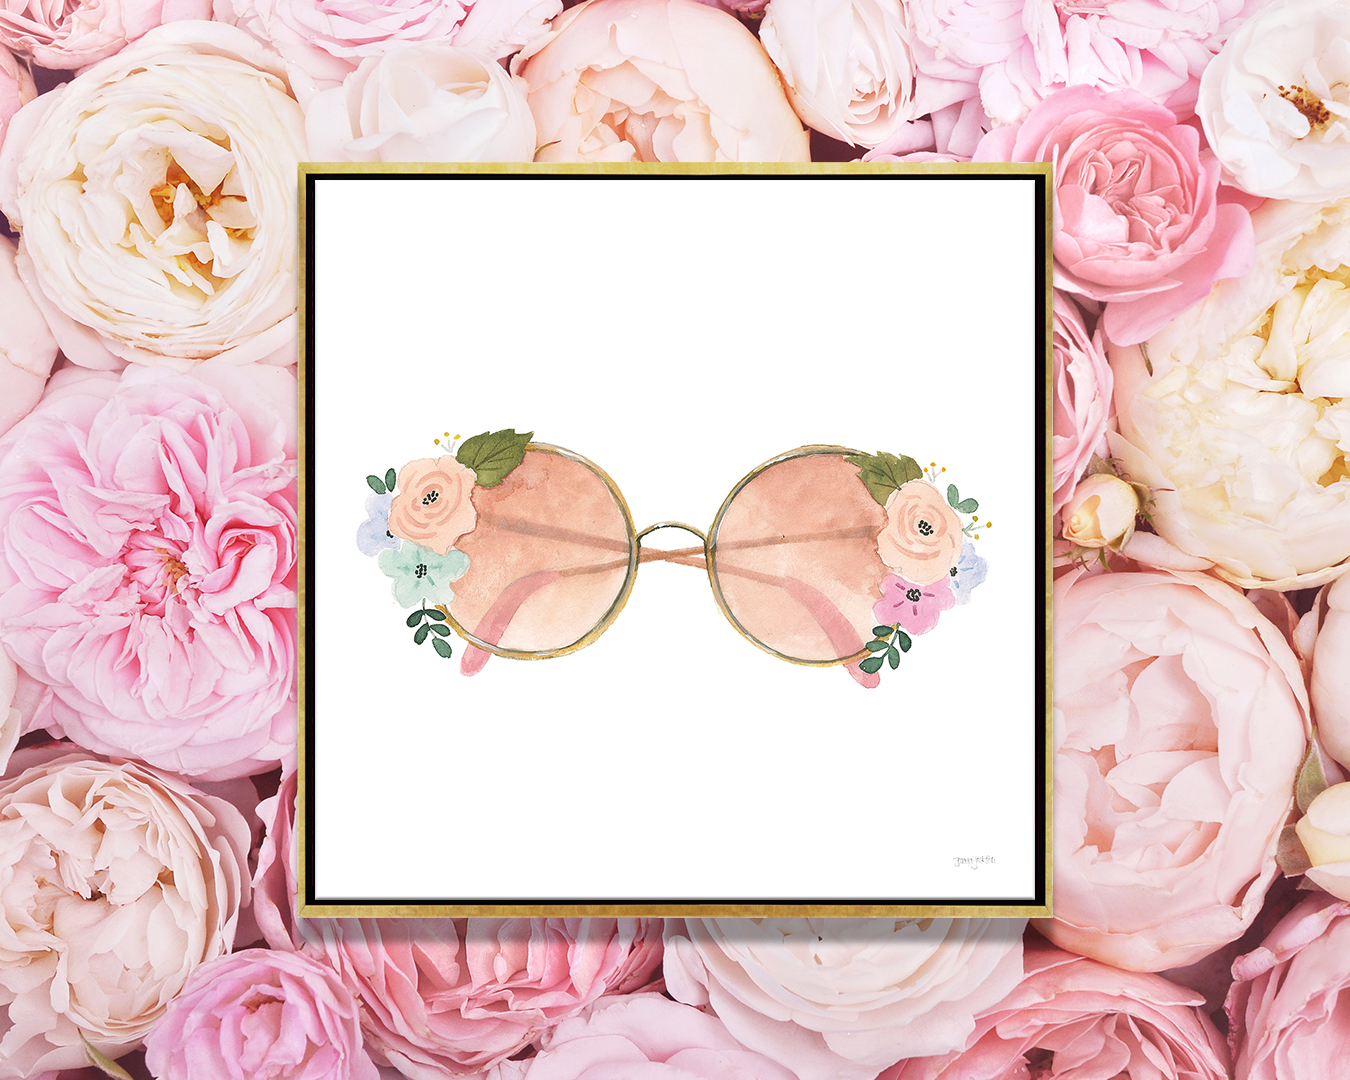 """""""Lets Chase Rainbows XX"""" by Jenaya Jackson shows rose-colored glasses with flower details on the rims."""